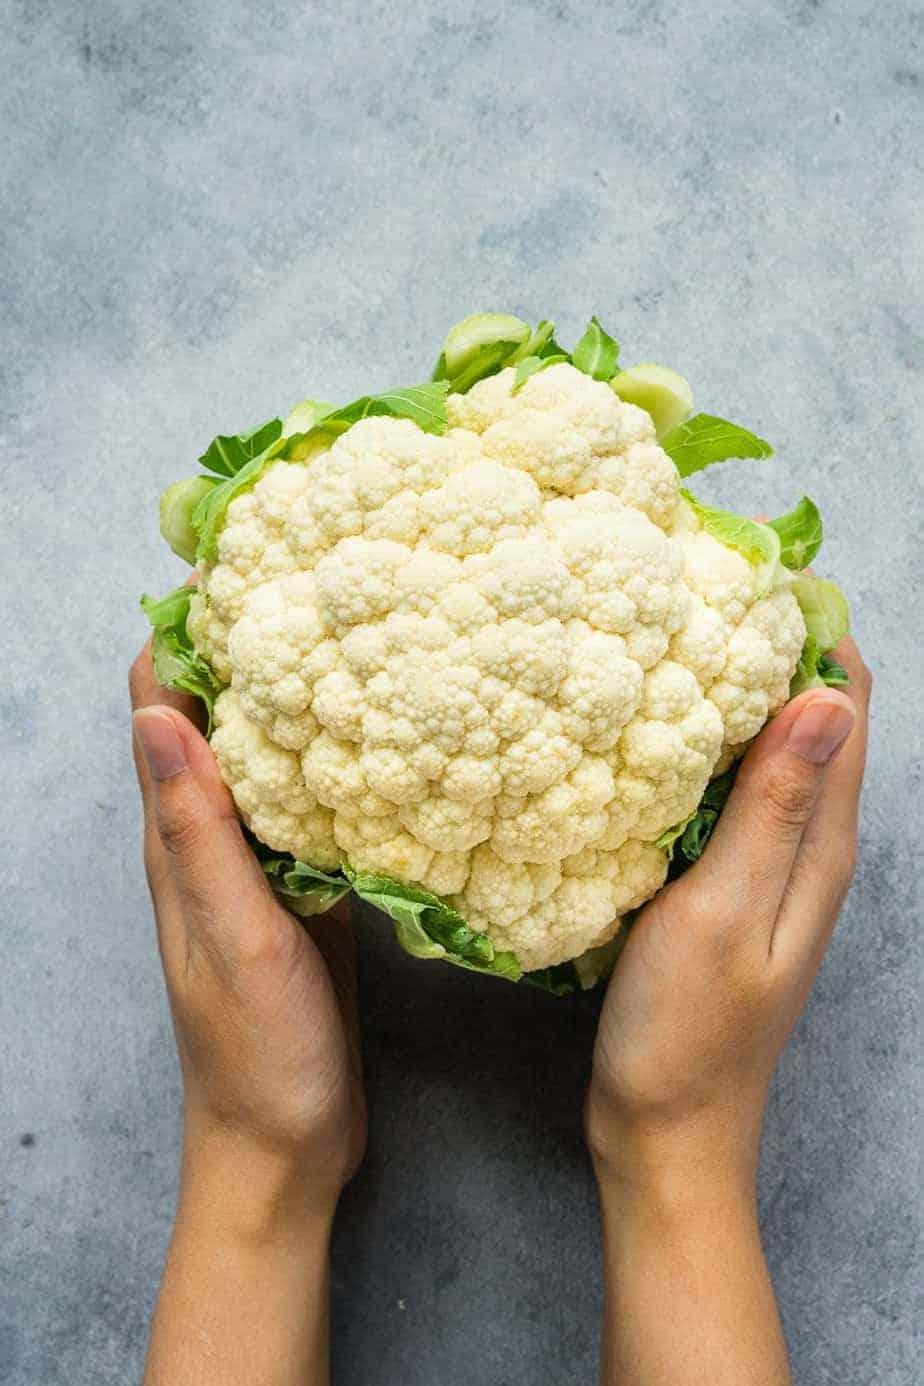 holding a head of cauliflower with both hands.